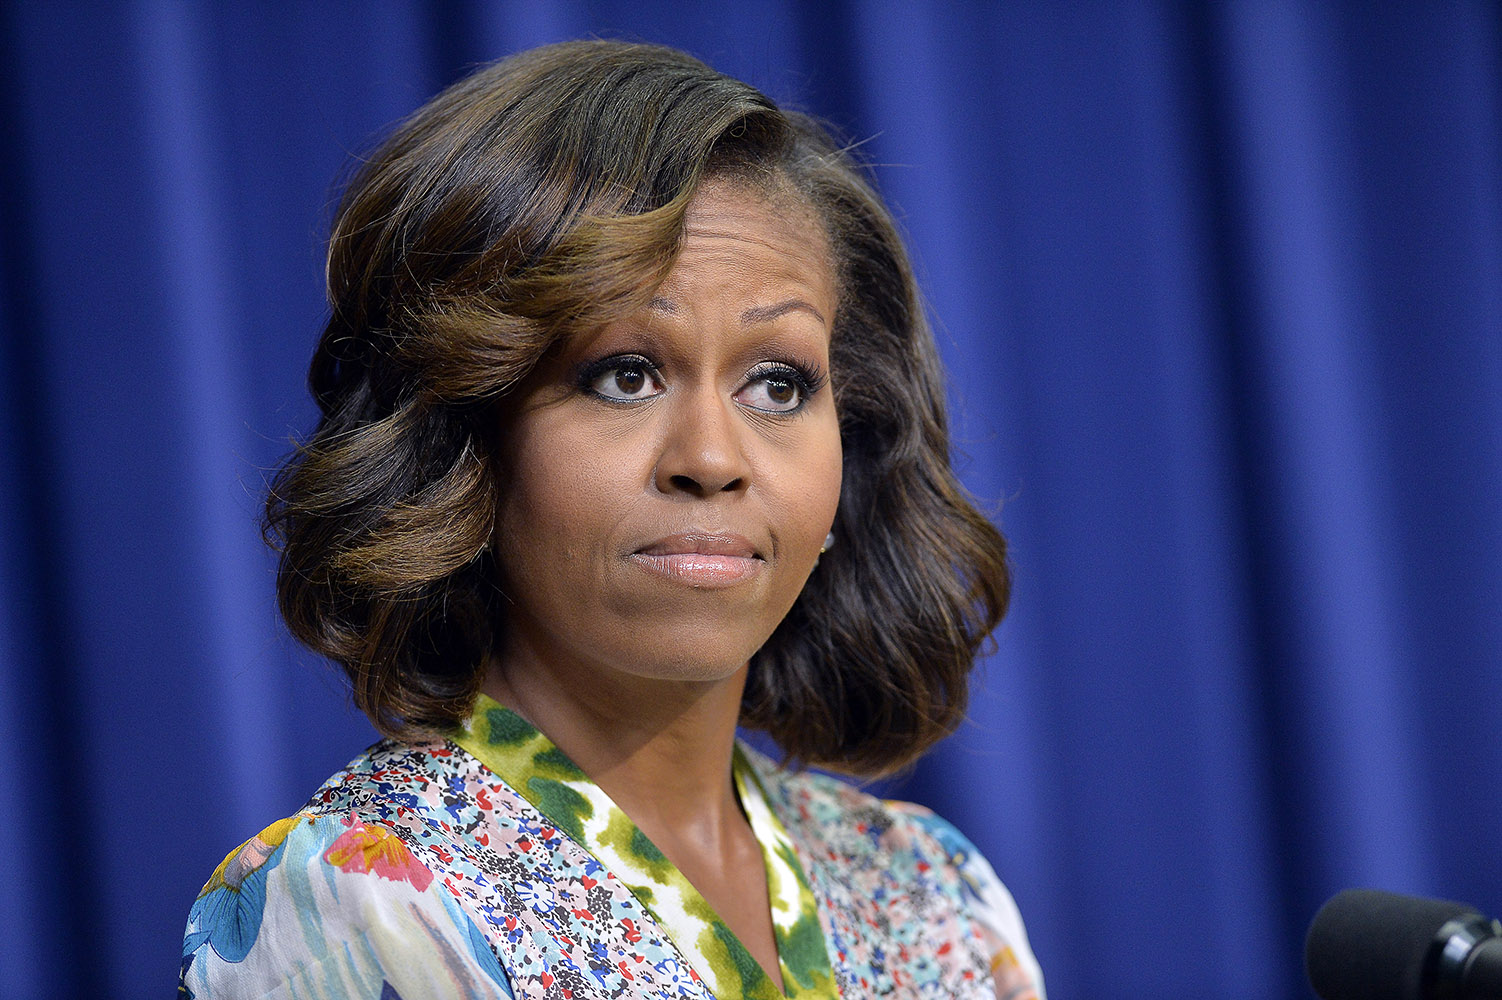 Look of the week: First Lady Michelle Obama sports new hairstyle